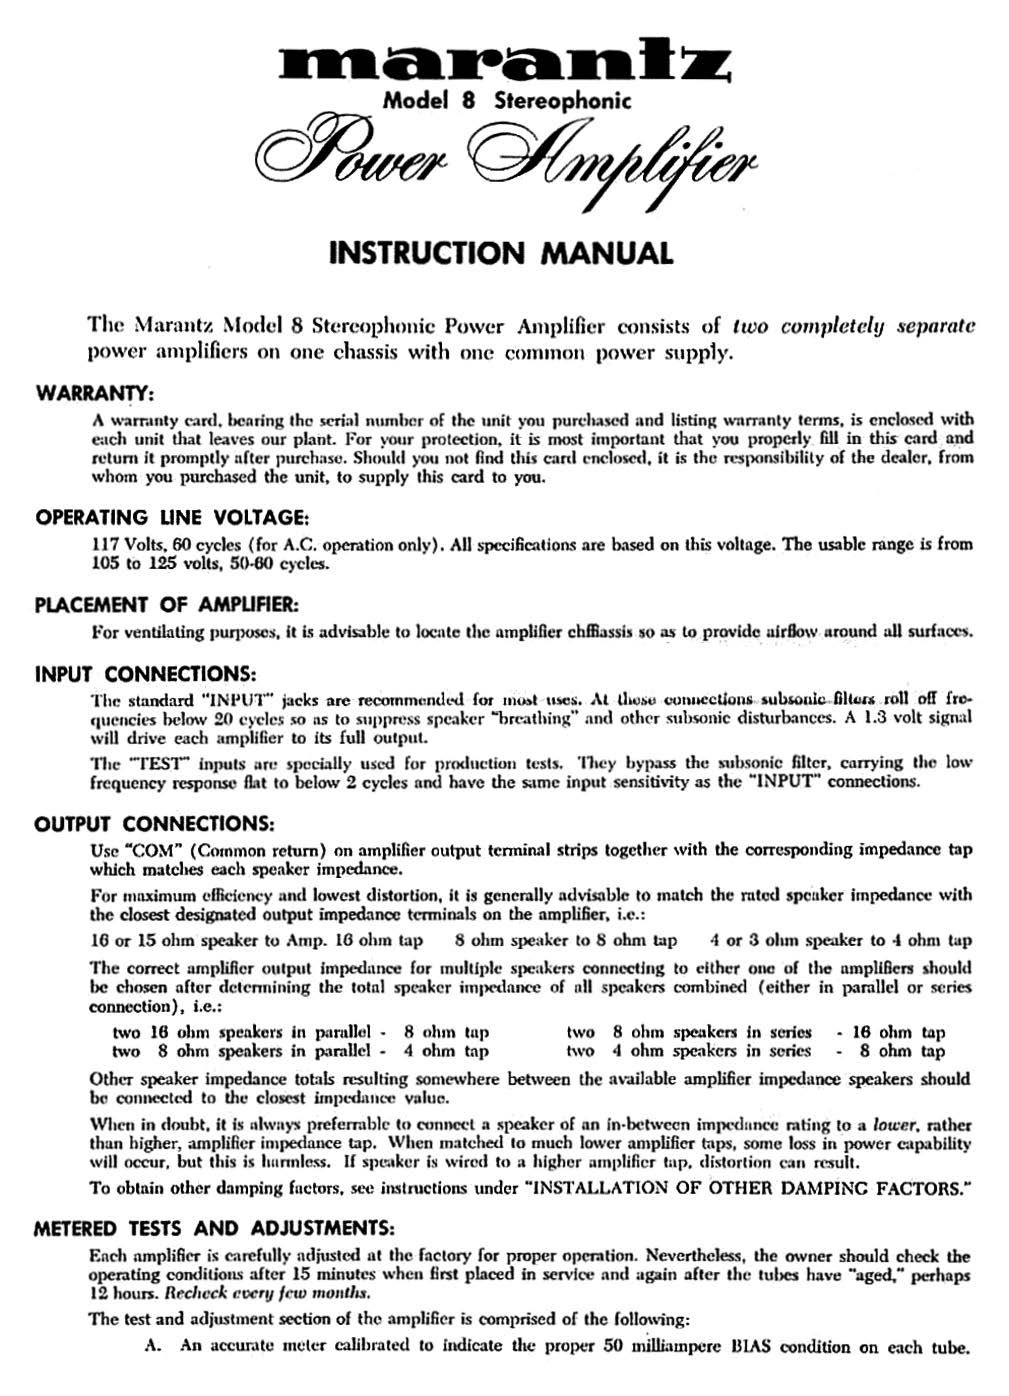 Marantz model 8 owners manual and more and 50 similar items marantz model 8 owners manual and more instant download fandeluxe Images